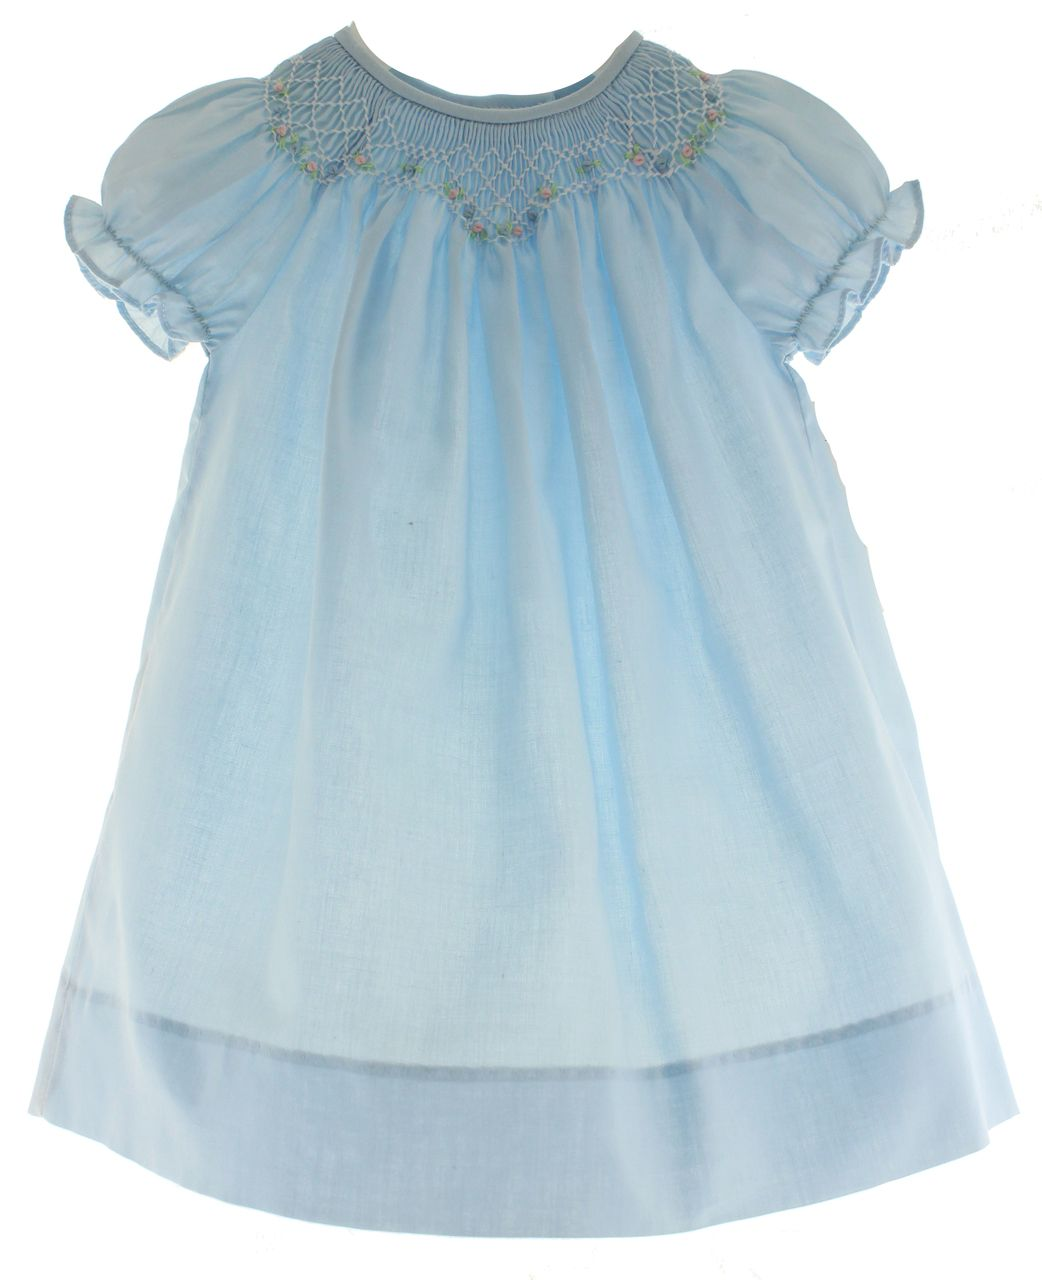 d4dd046fd Girls Blue Smocked Day Gown features English smocking and light pink  flowers   Rosalina, $36.00